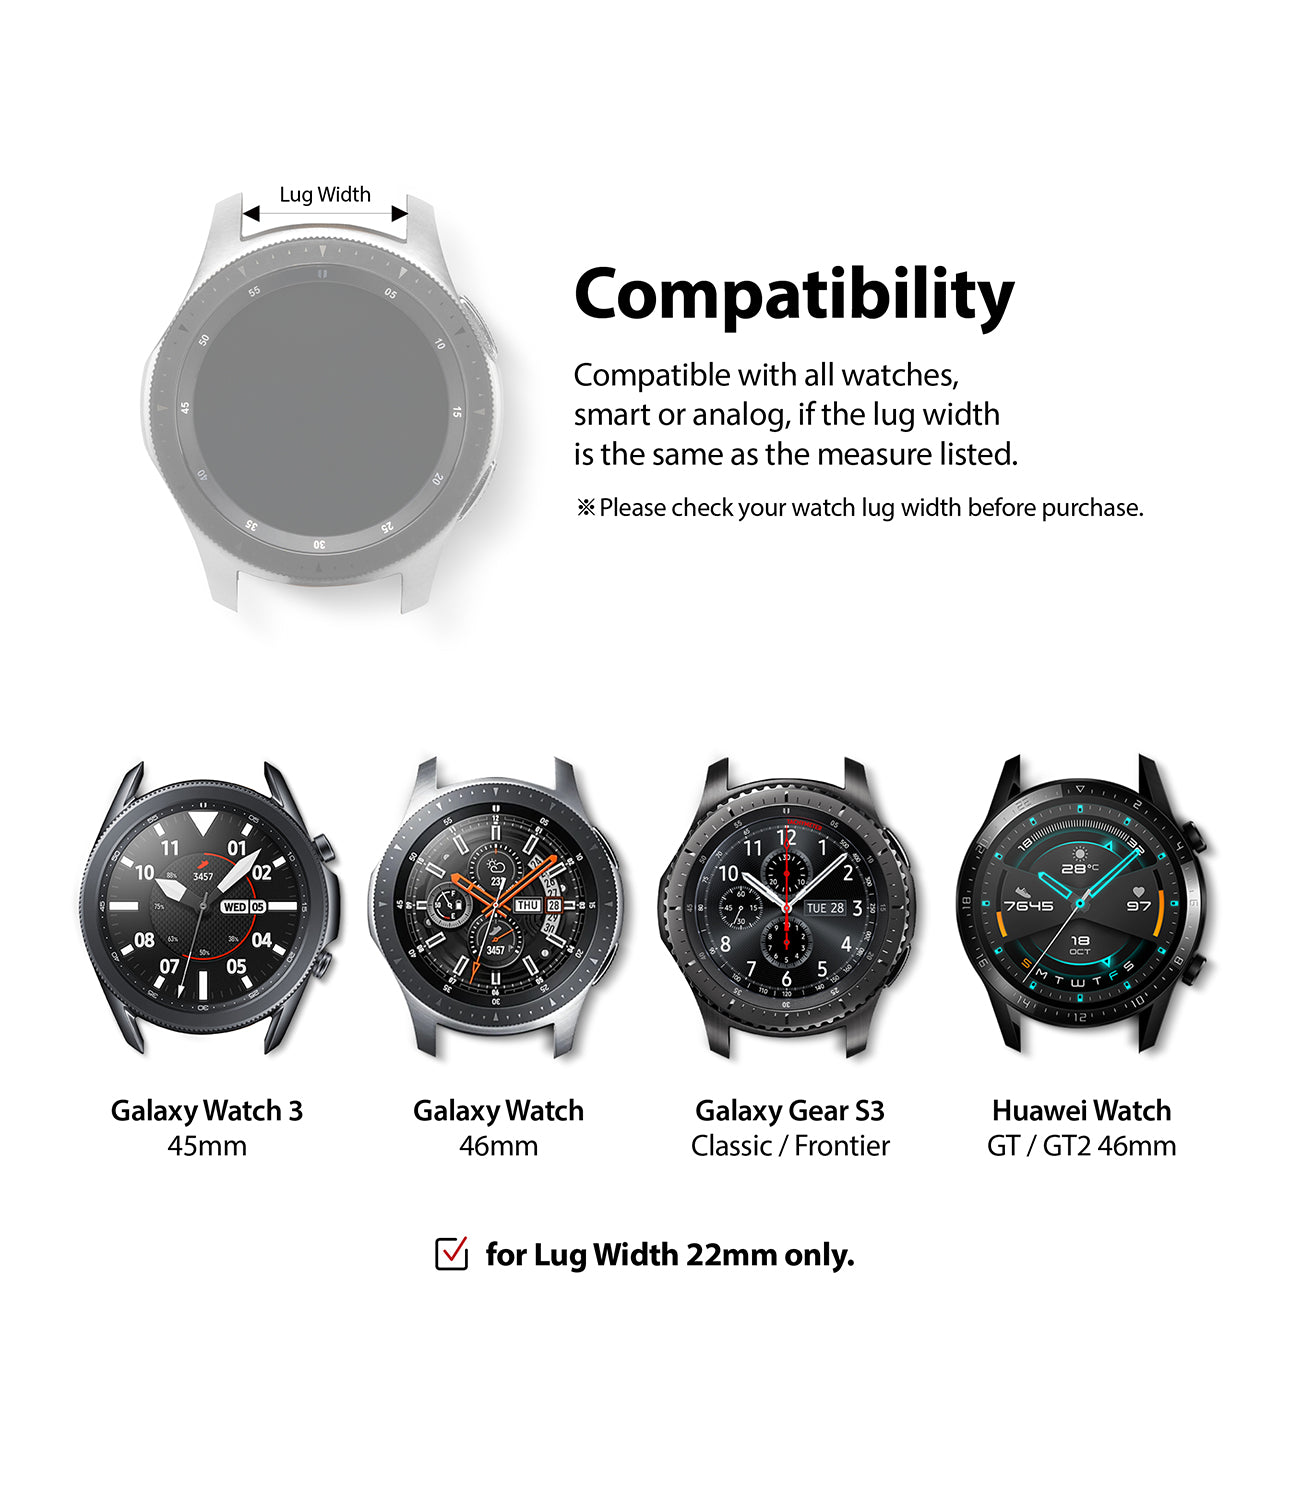 compatible with galaxy watch 3 45mm, galaxy watch 46mm, galaxy gear s3 classic / frontier, huawei watch gt / gt2 46mm